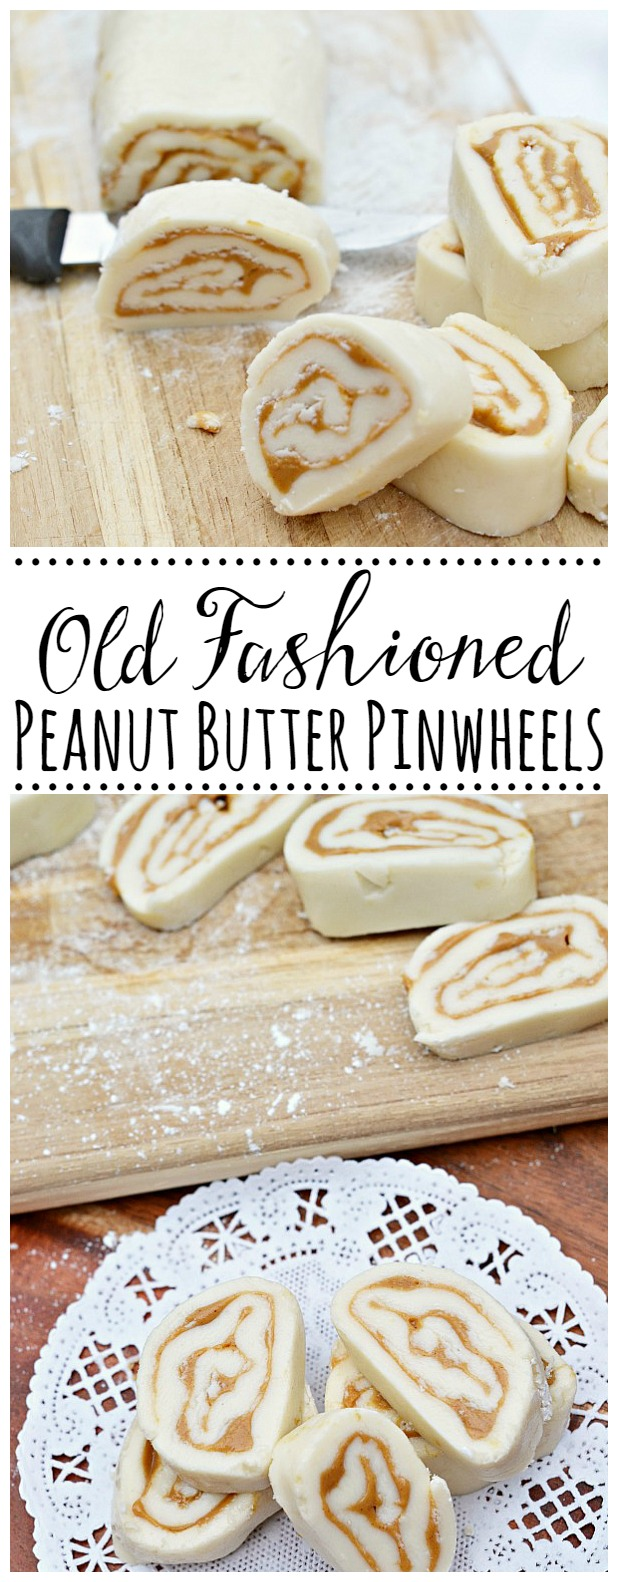 Old-fashioned peanut butter pinwheels. YUM!!